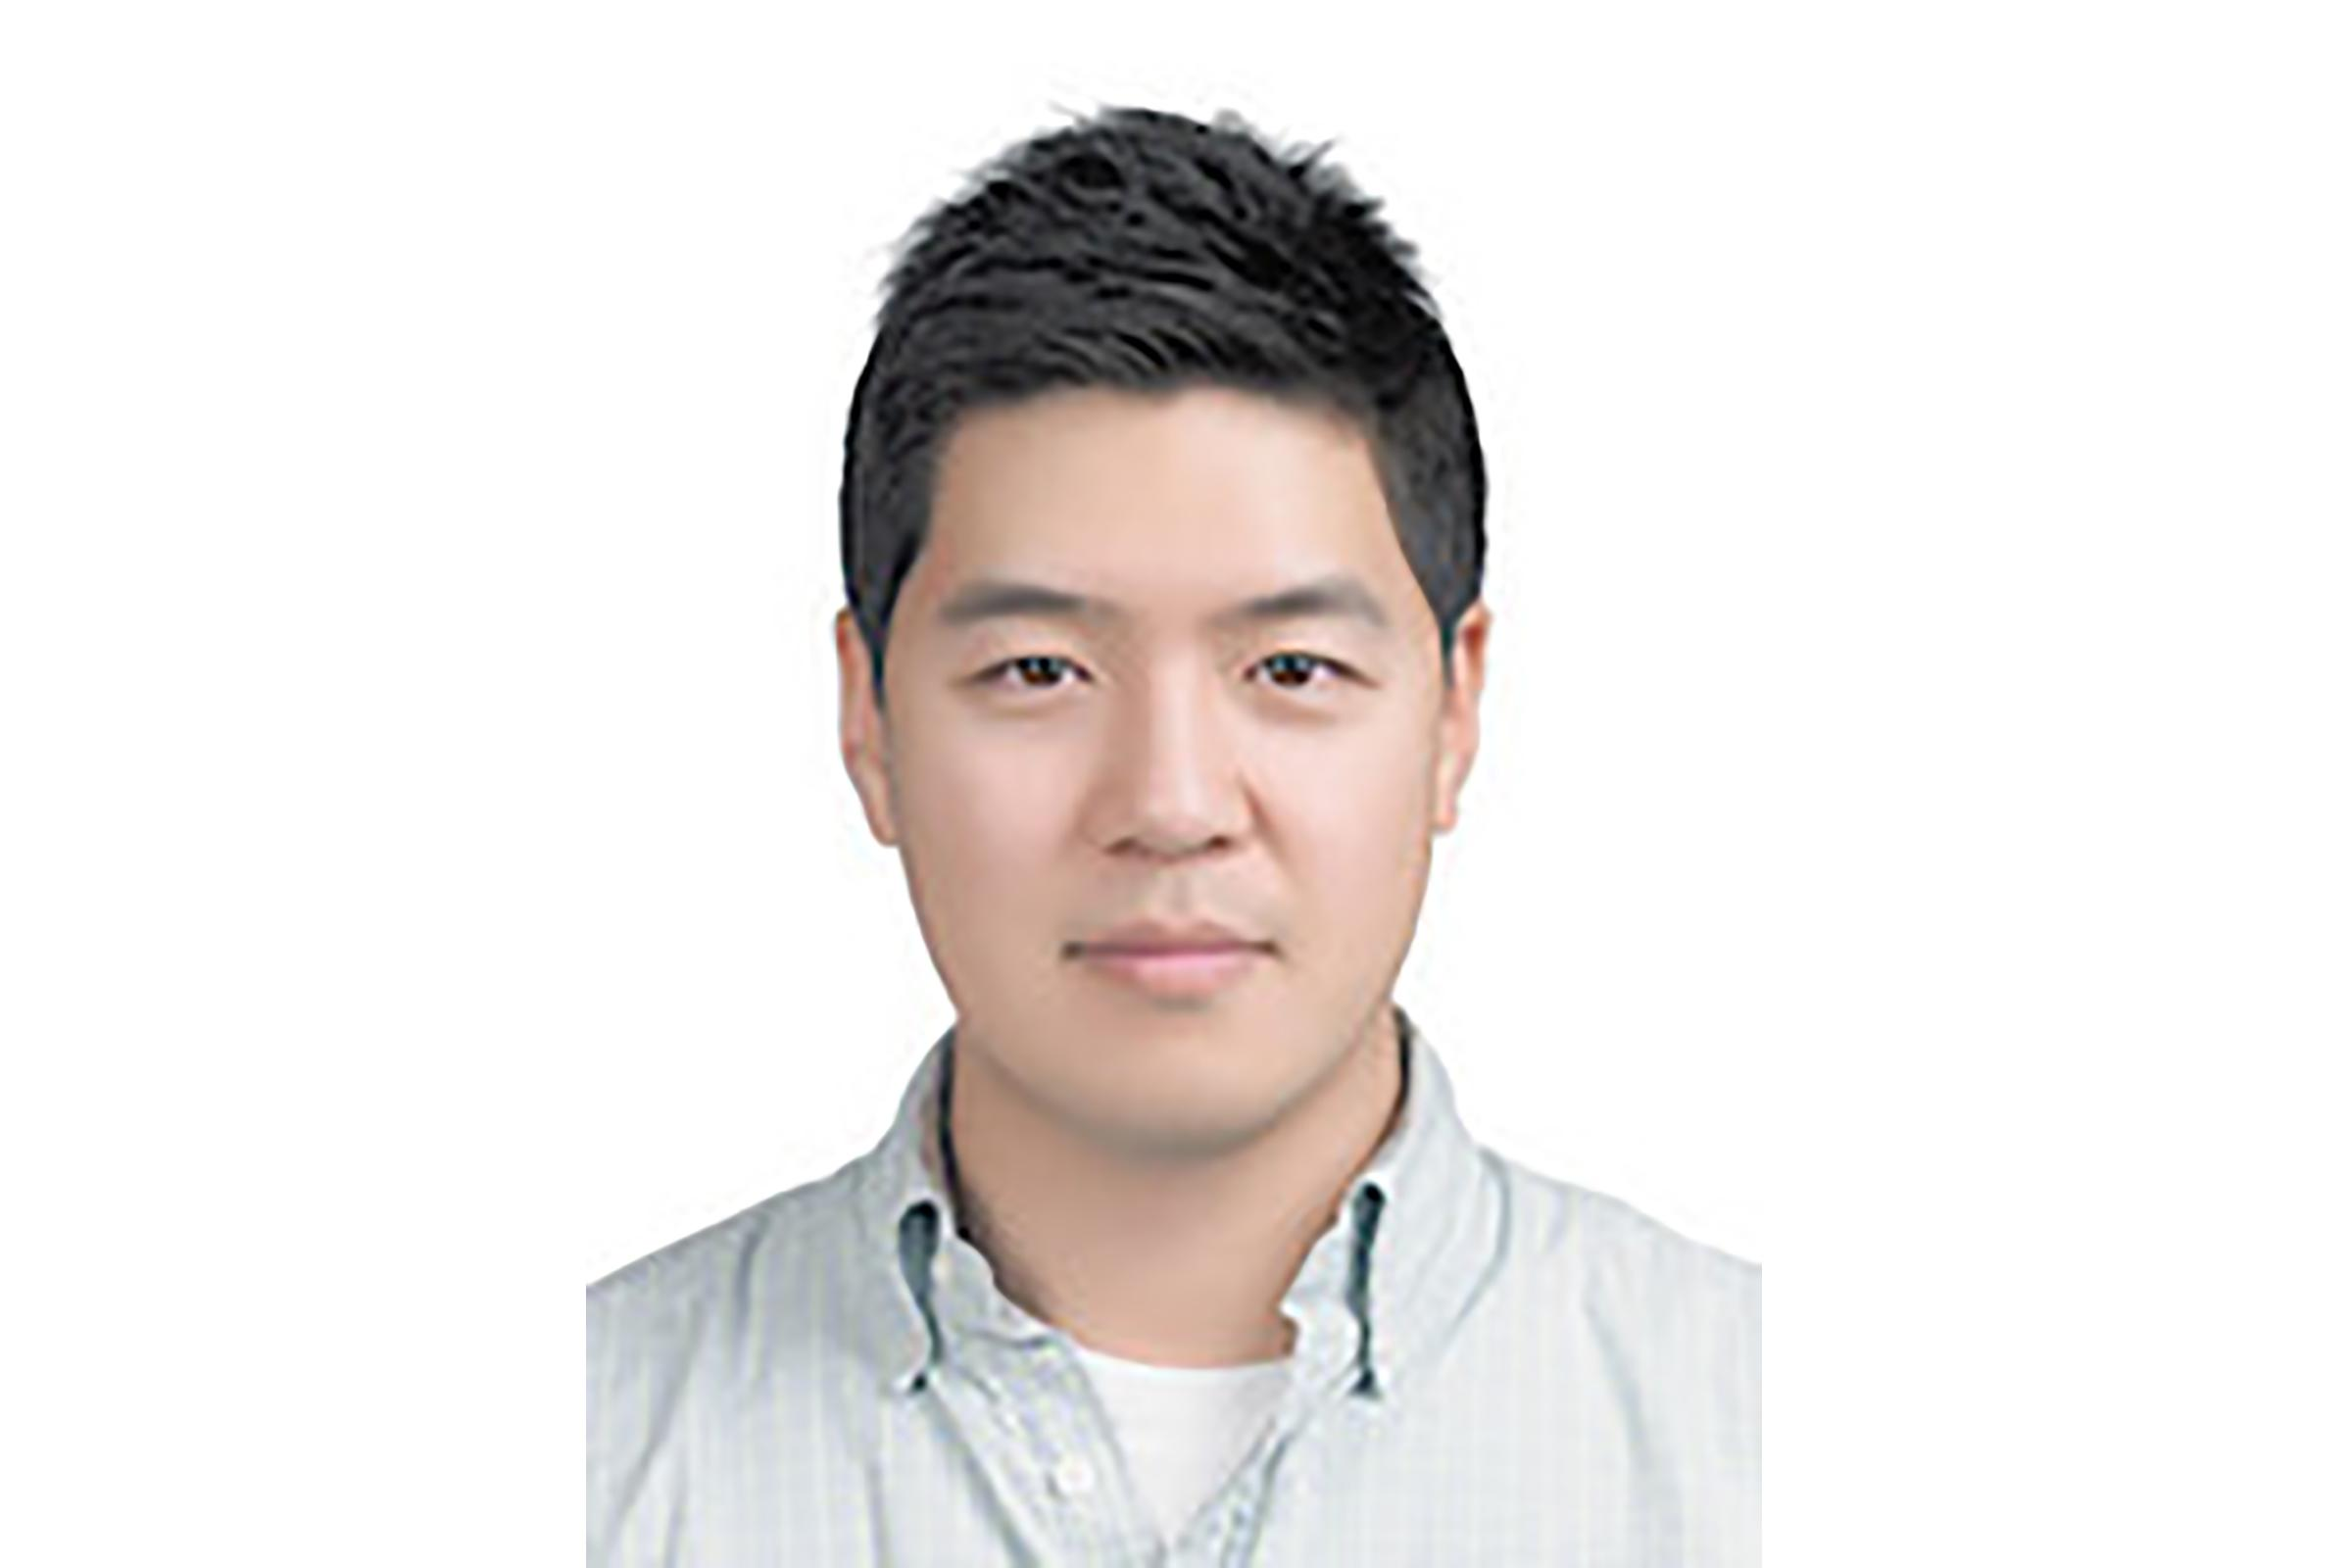 Woo-Young Ahn is an assistant professor of psychology